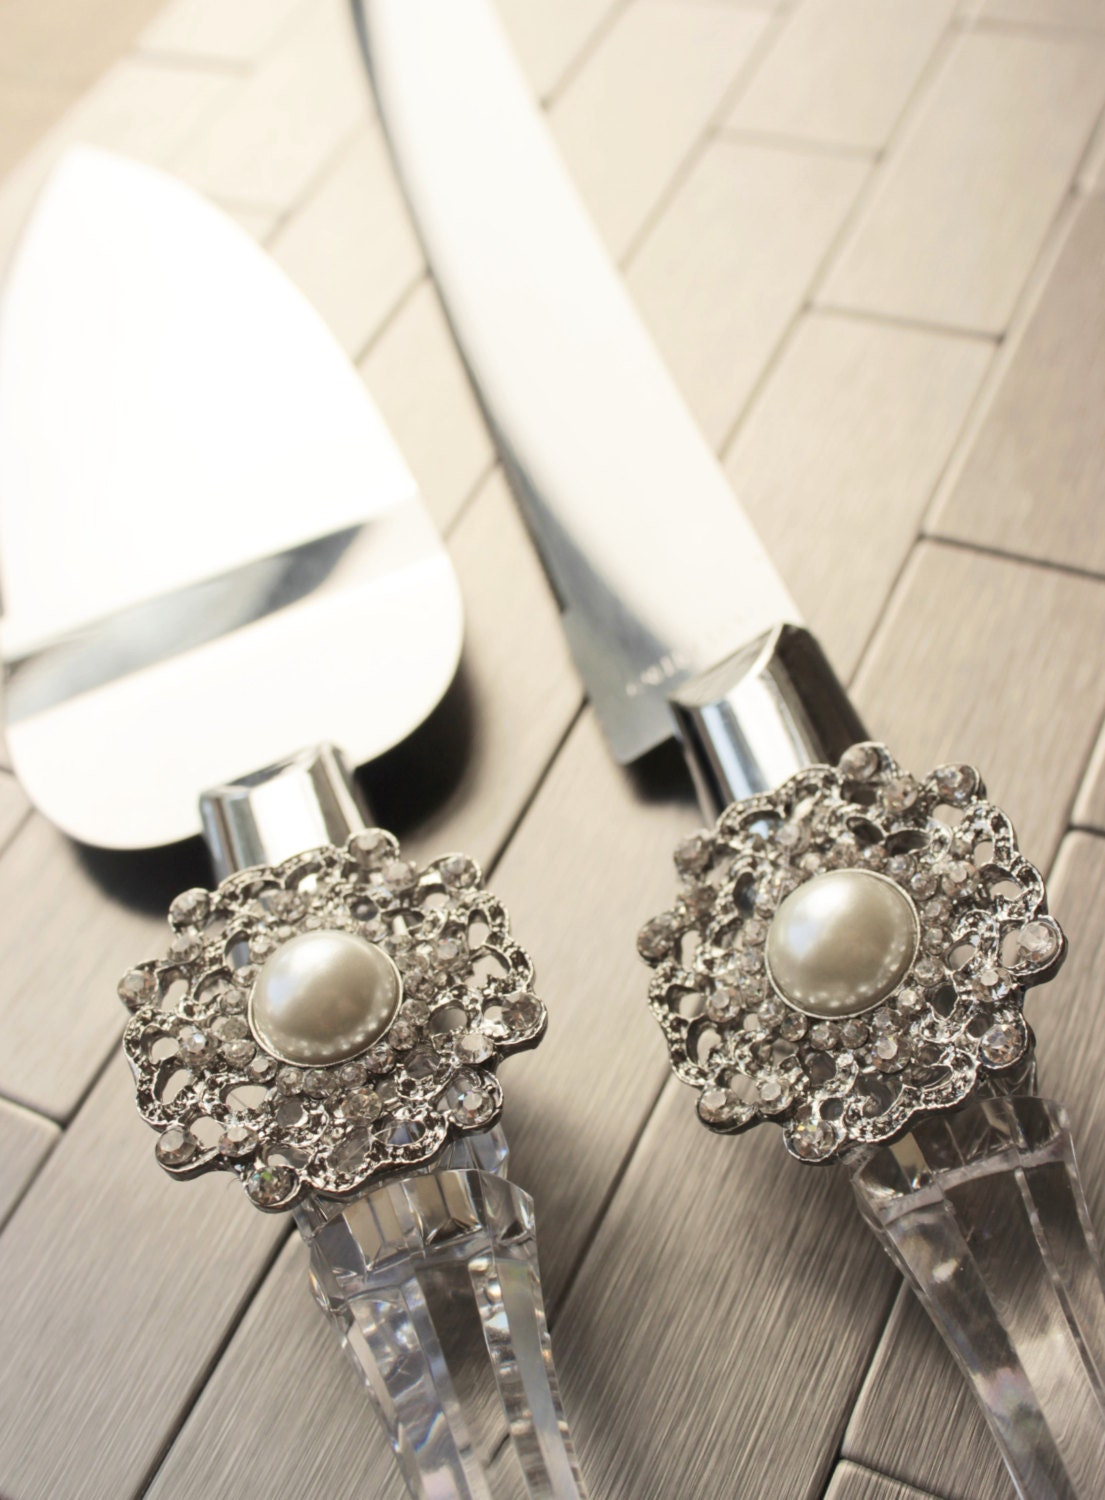 bling wedding cake cutting set wedding cake server and knife pearl and rhinestone wedding 11924